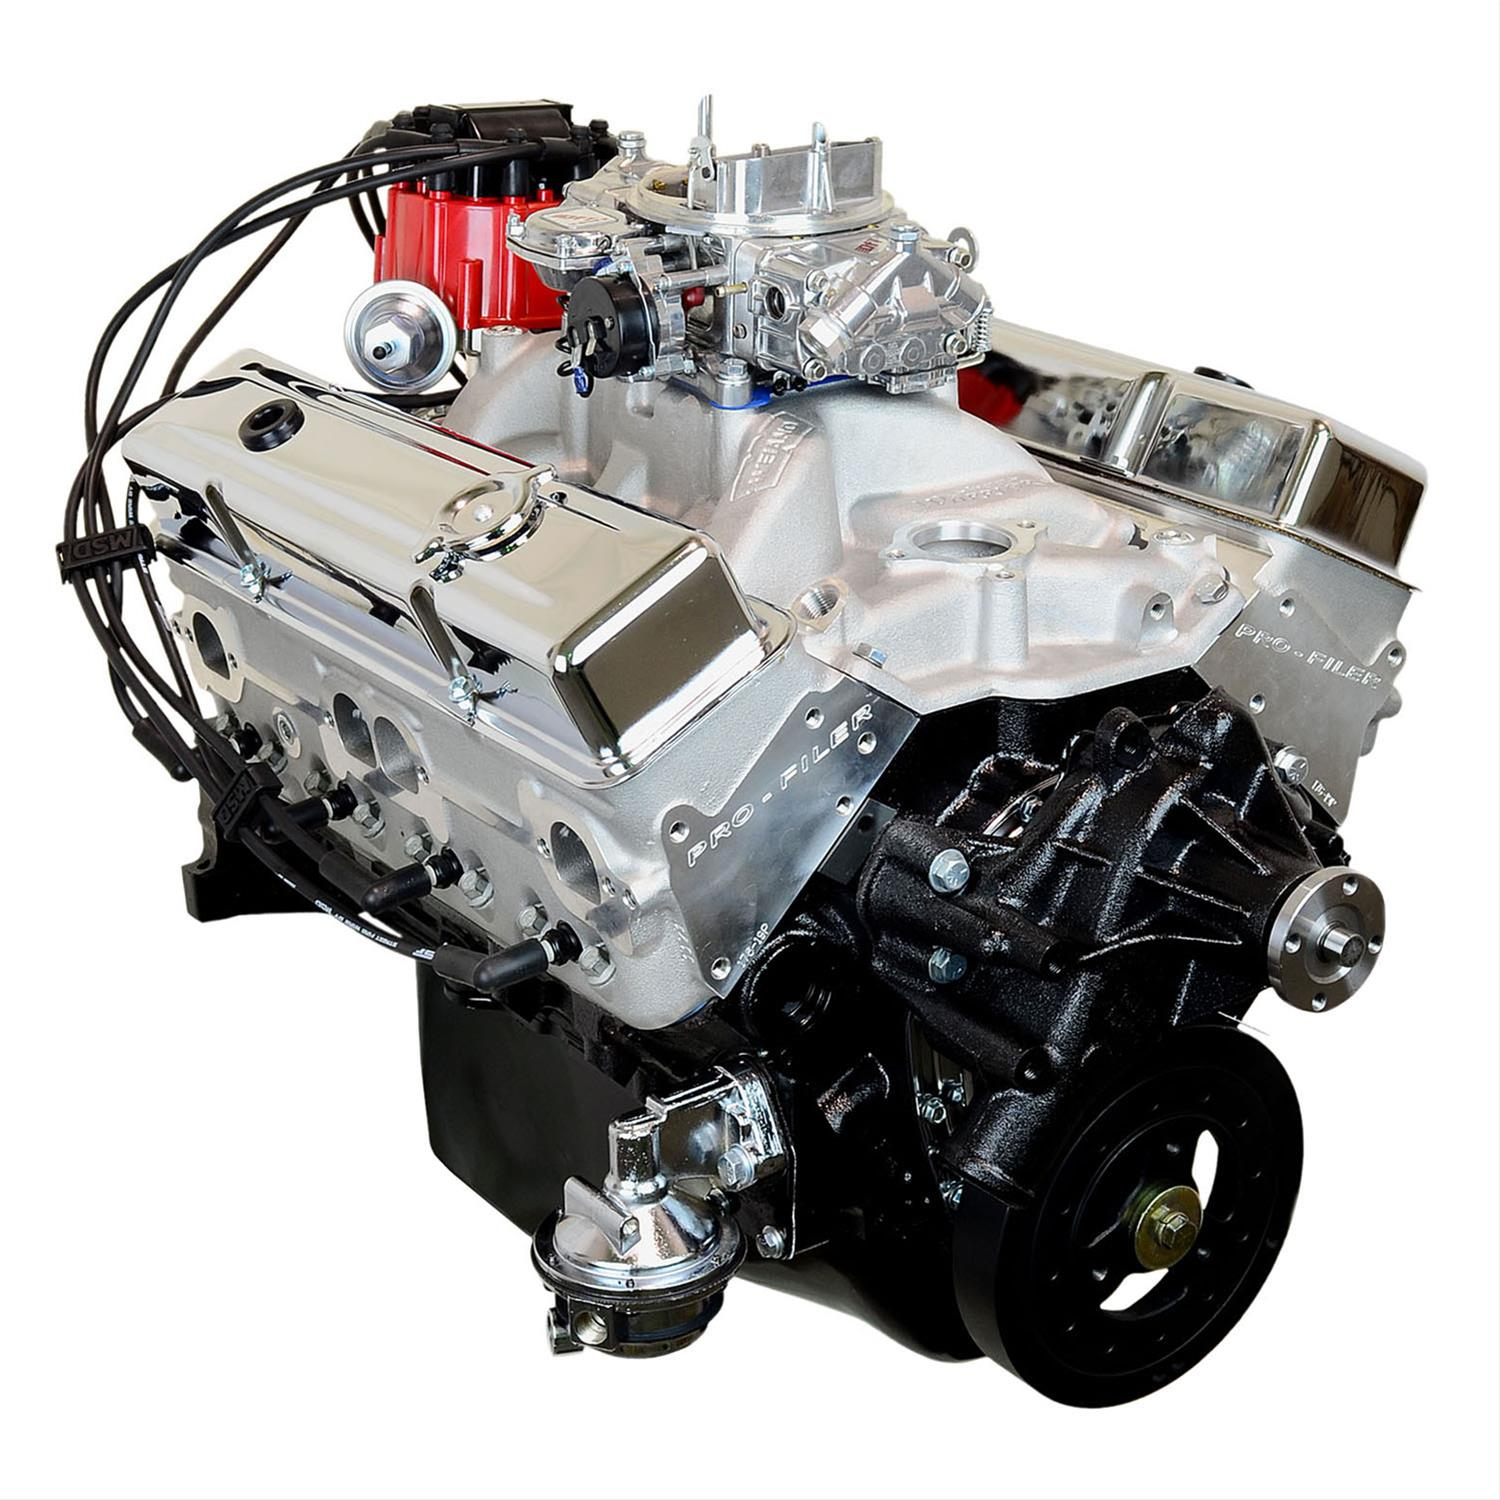 Stock Ls1 With Cam Hp: ATK High Performance GM 383 Stroker 415HP Stage 3 Crate